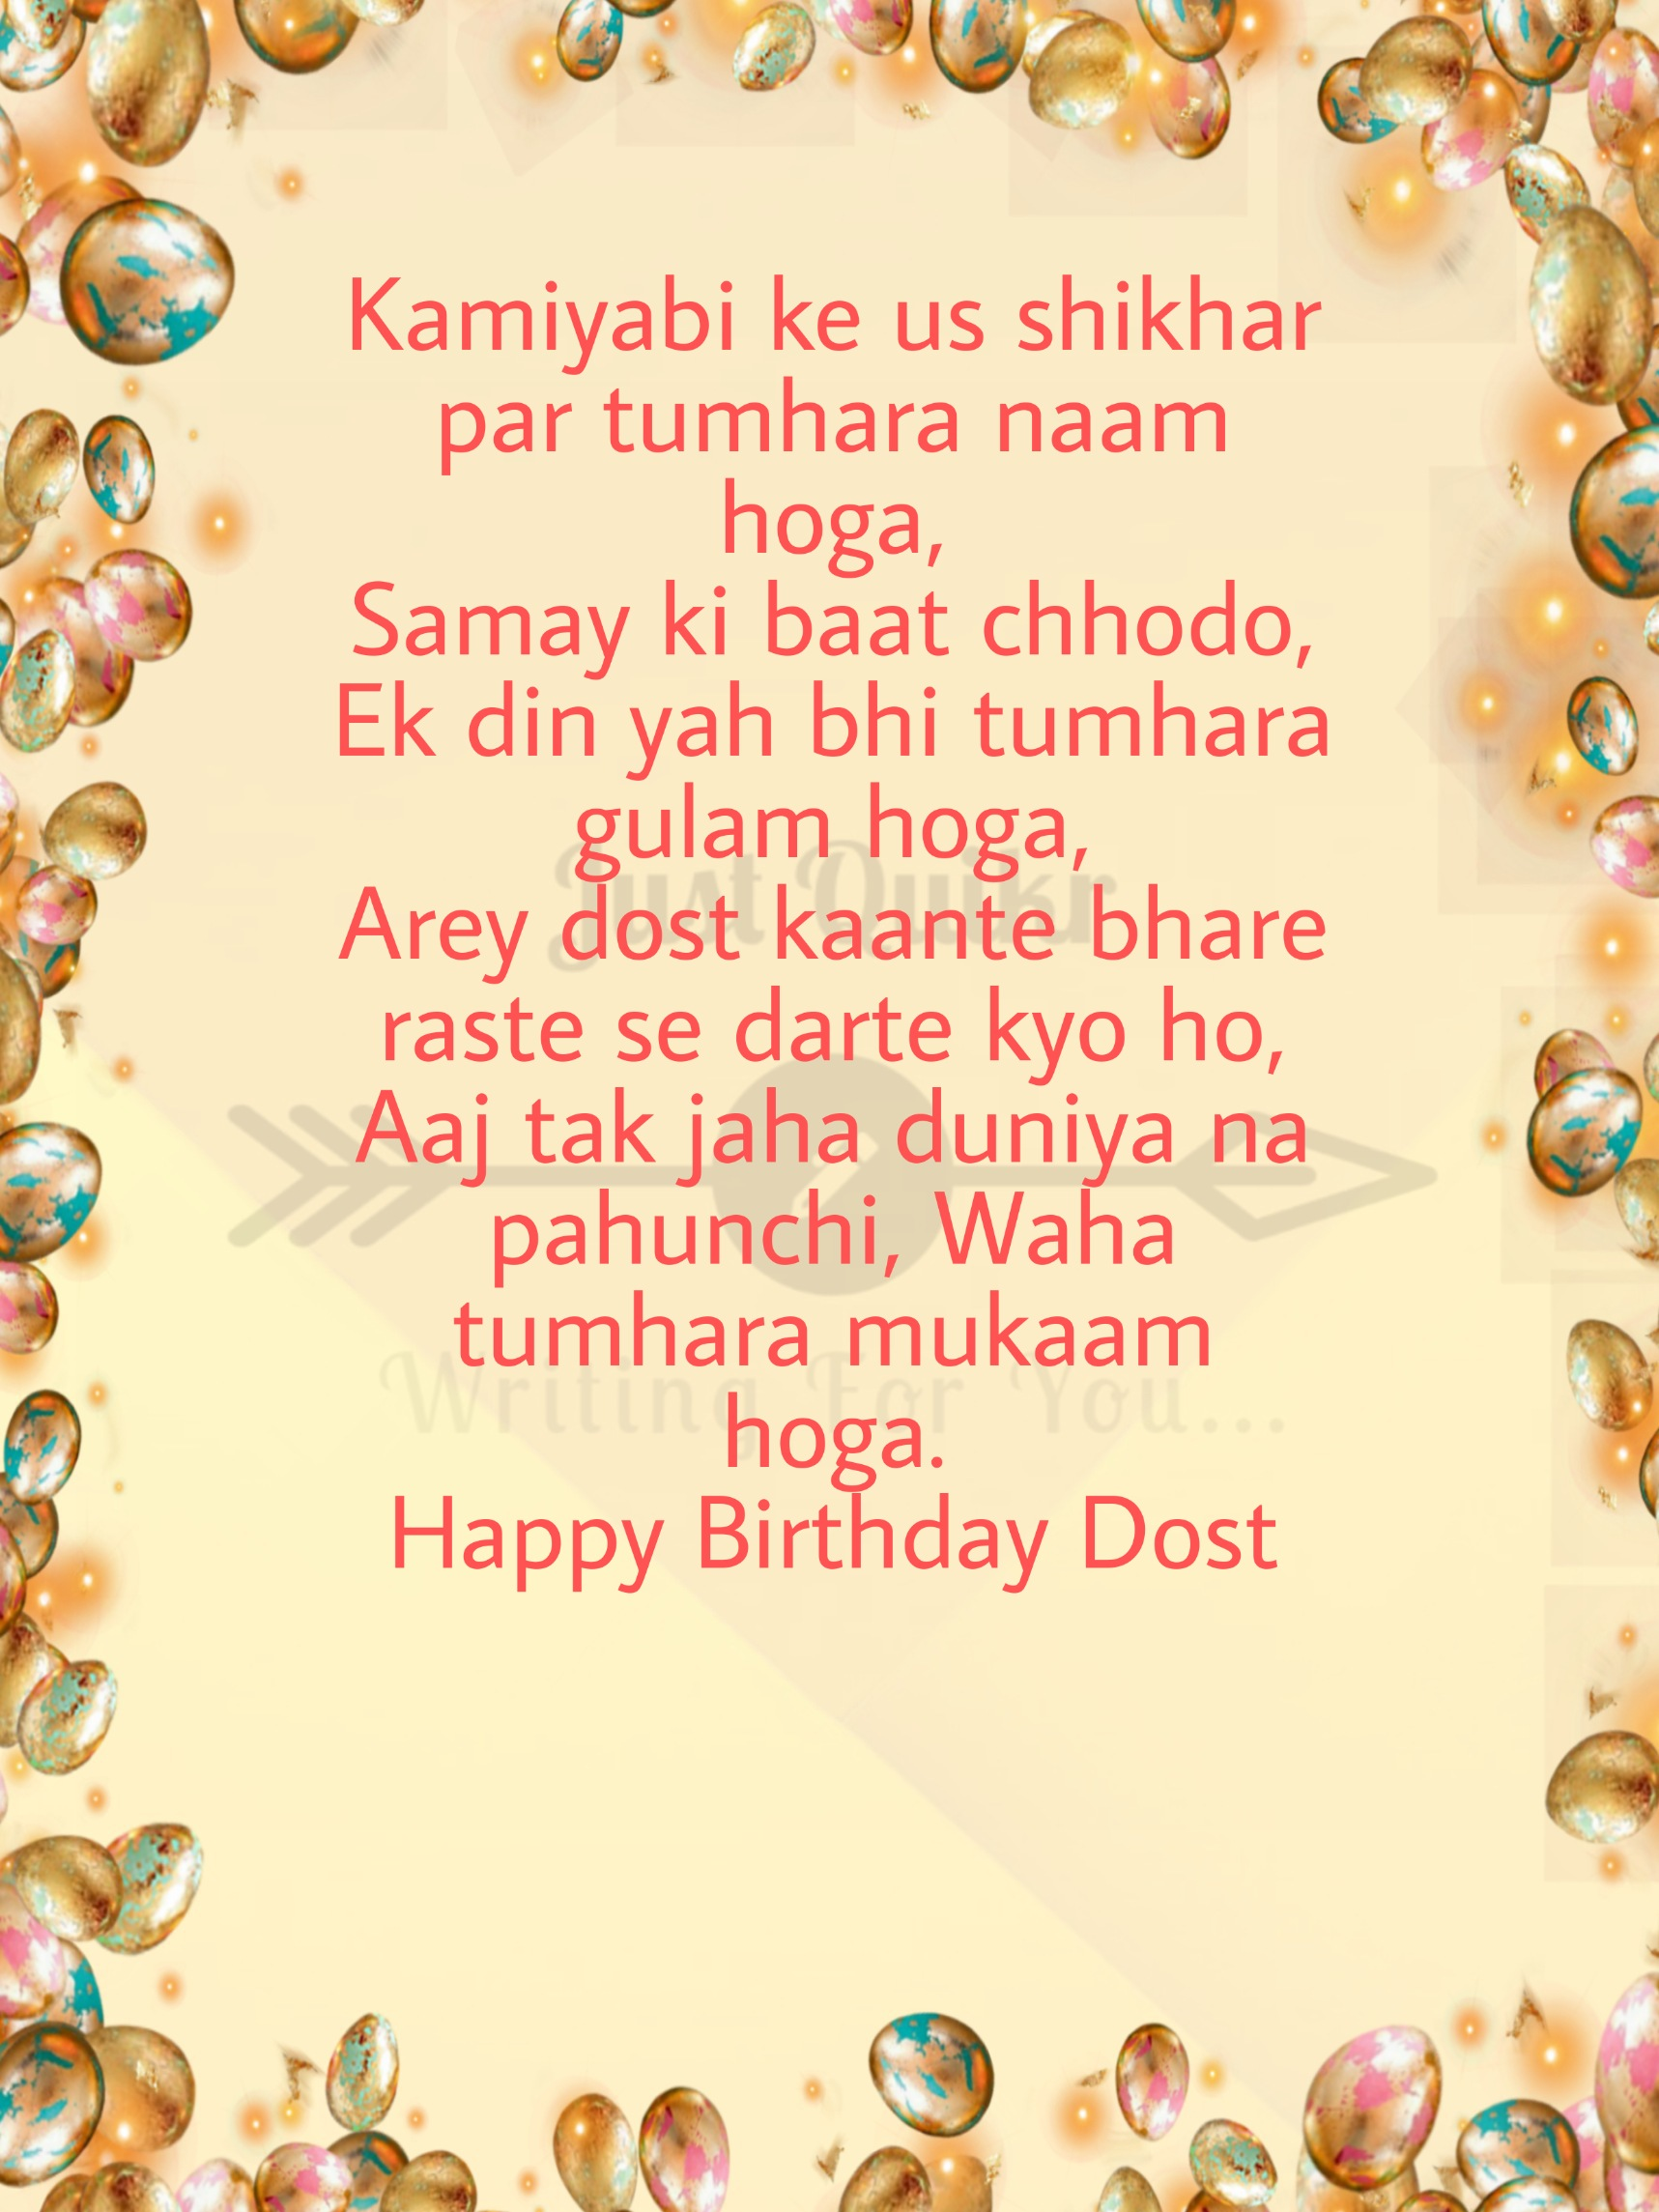 Happy Birthday Funny Wishes Memes and Images for Friend in Status